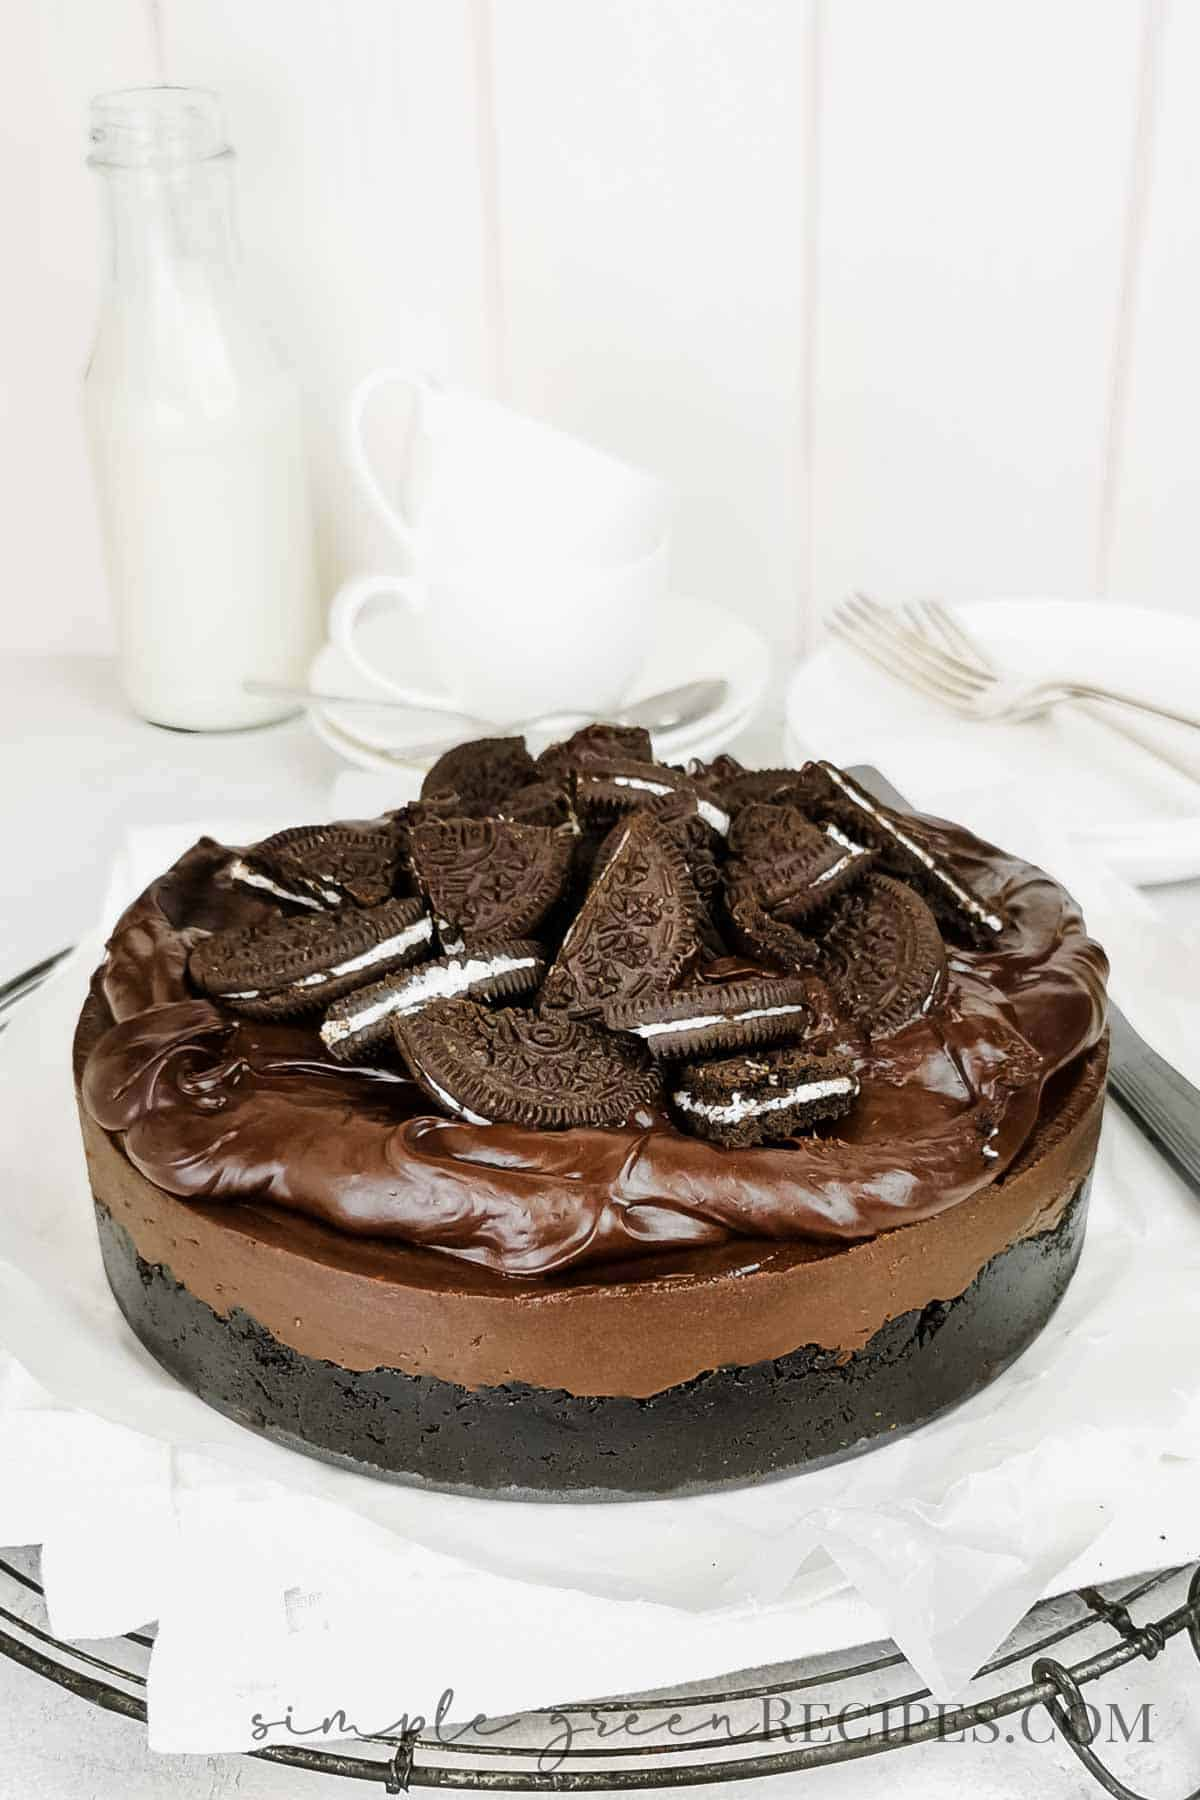 Uncut chocolate cheesecake topped with chocolate ganache and oreo cookies, on a wire rack.